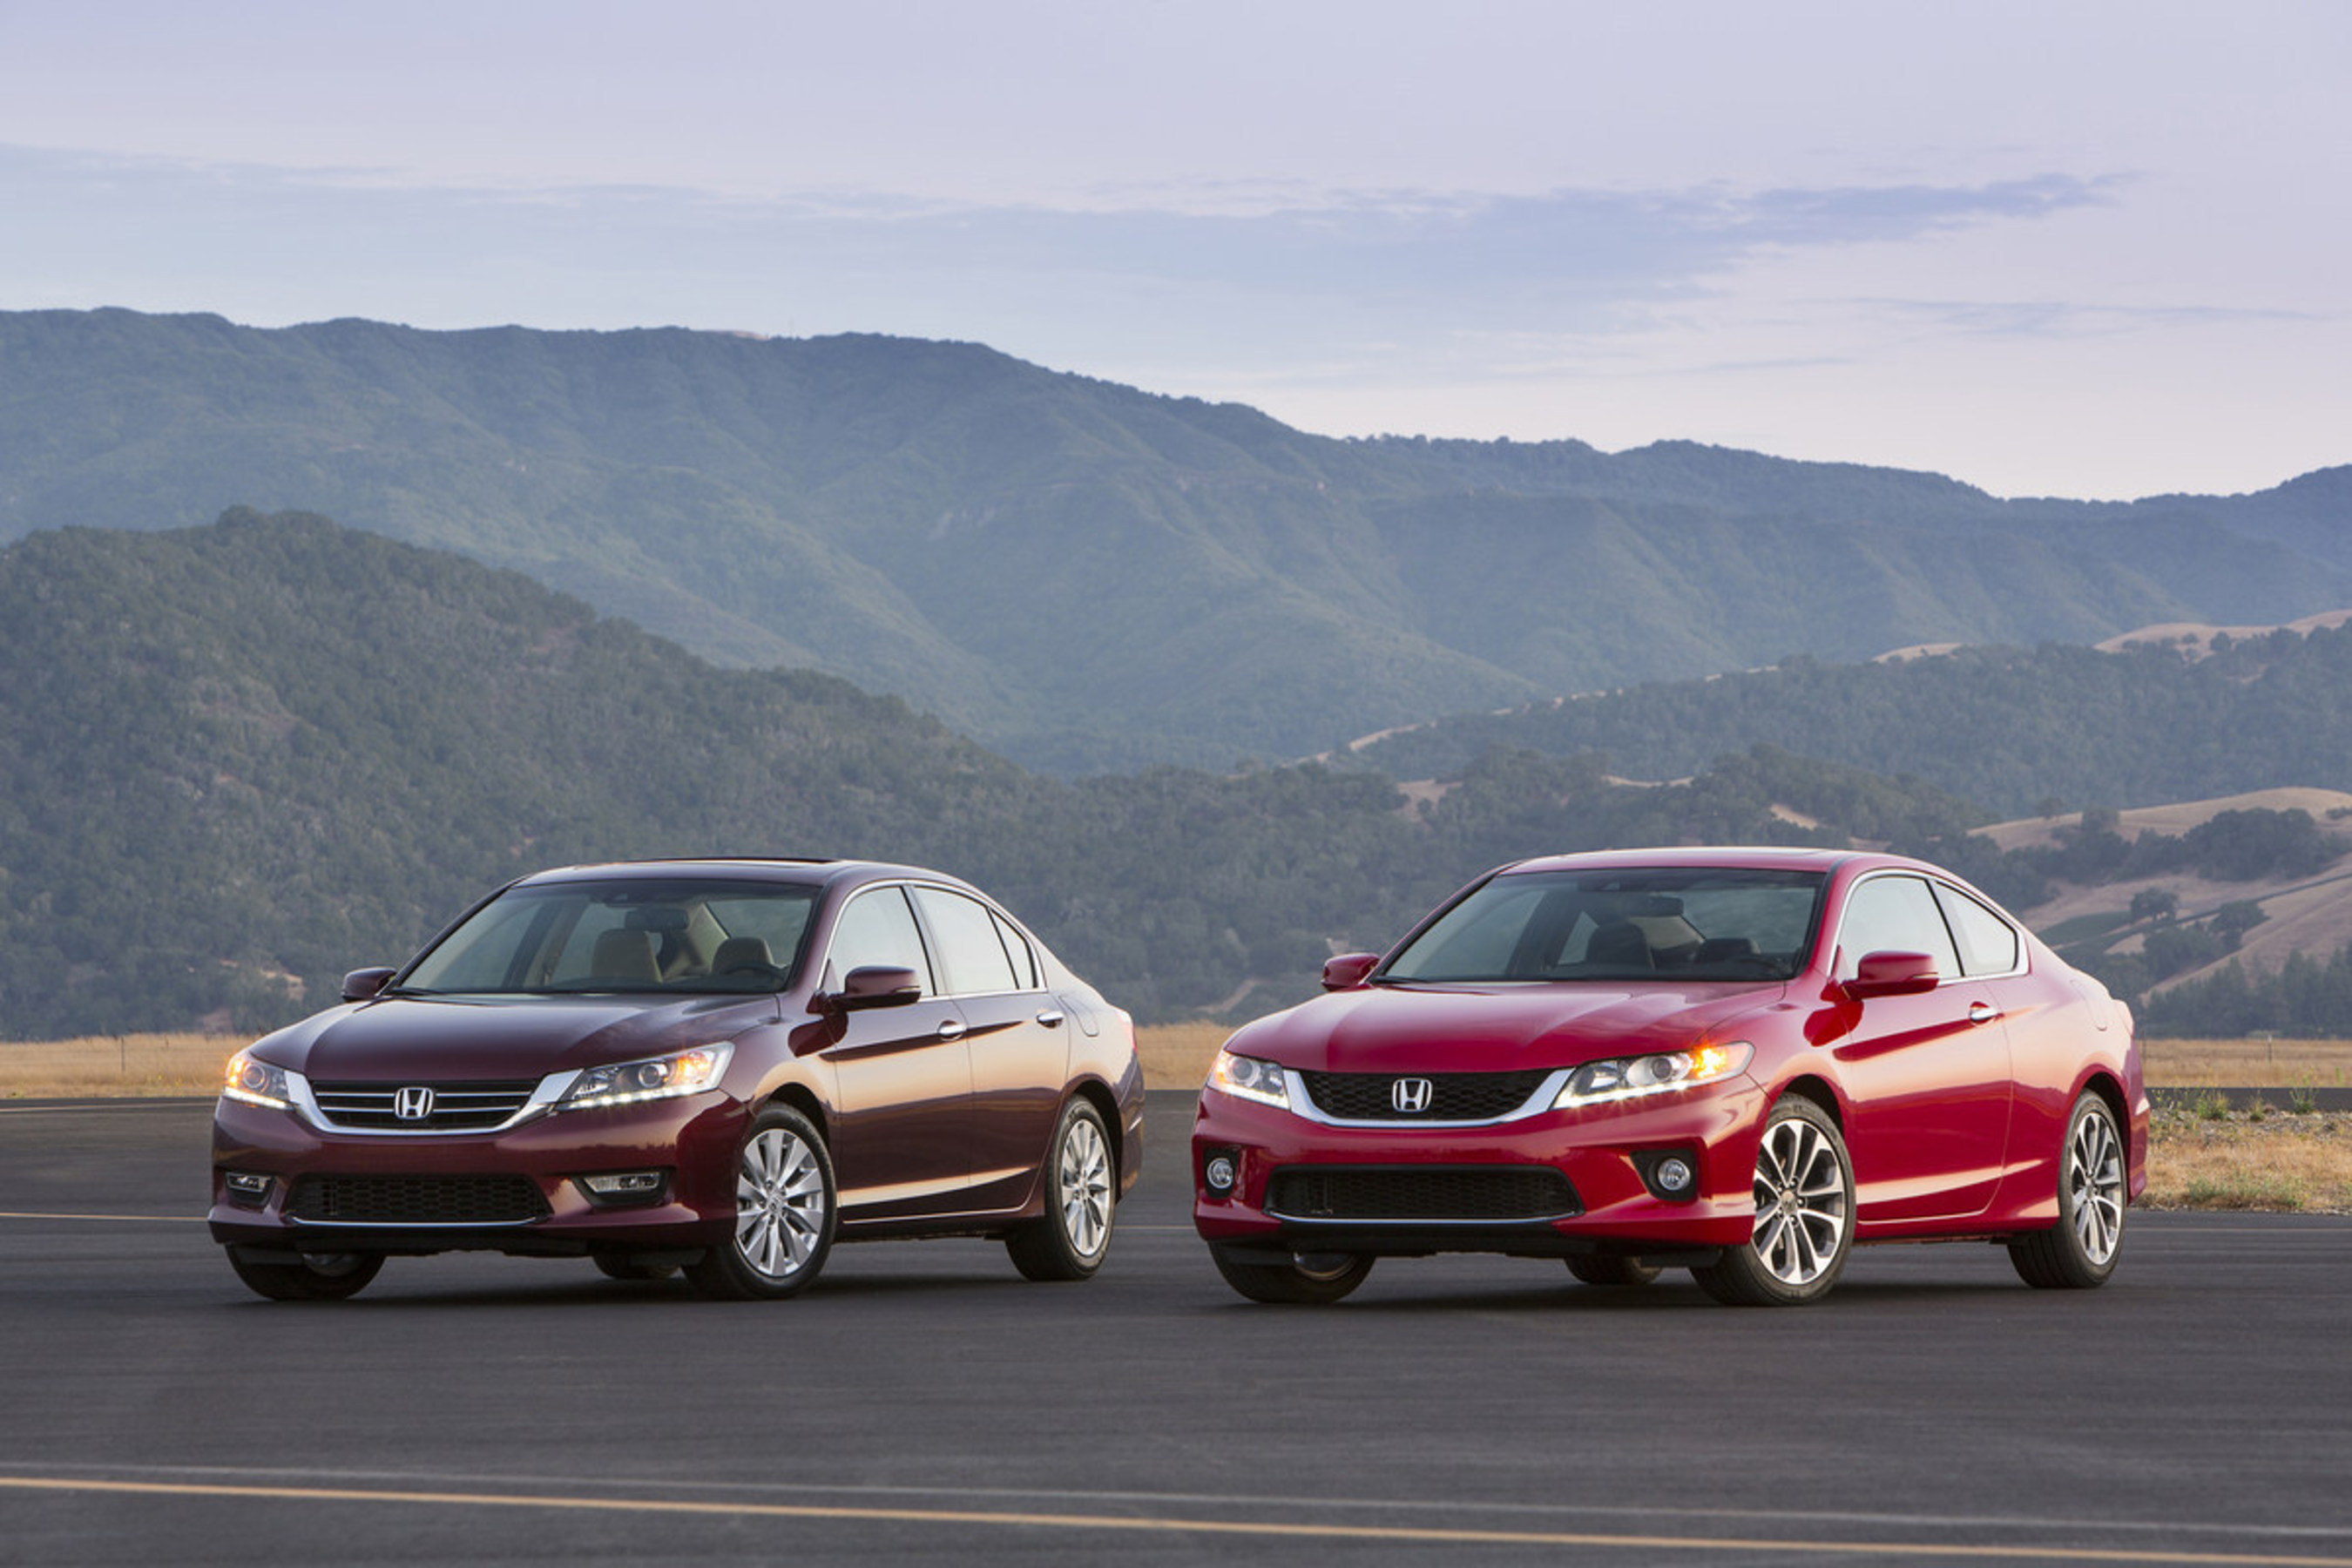 The Most Popular Car in the U.S., the Honda Accord, Continues as #1 in Owner Loyalty, According to IHS ...